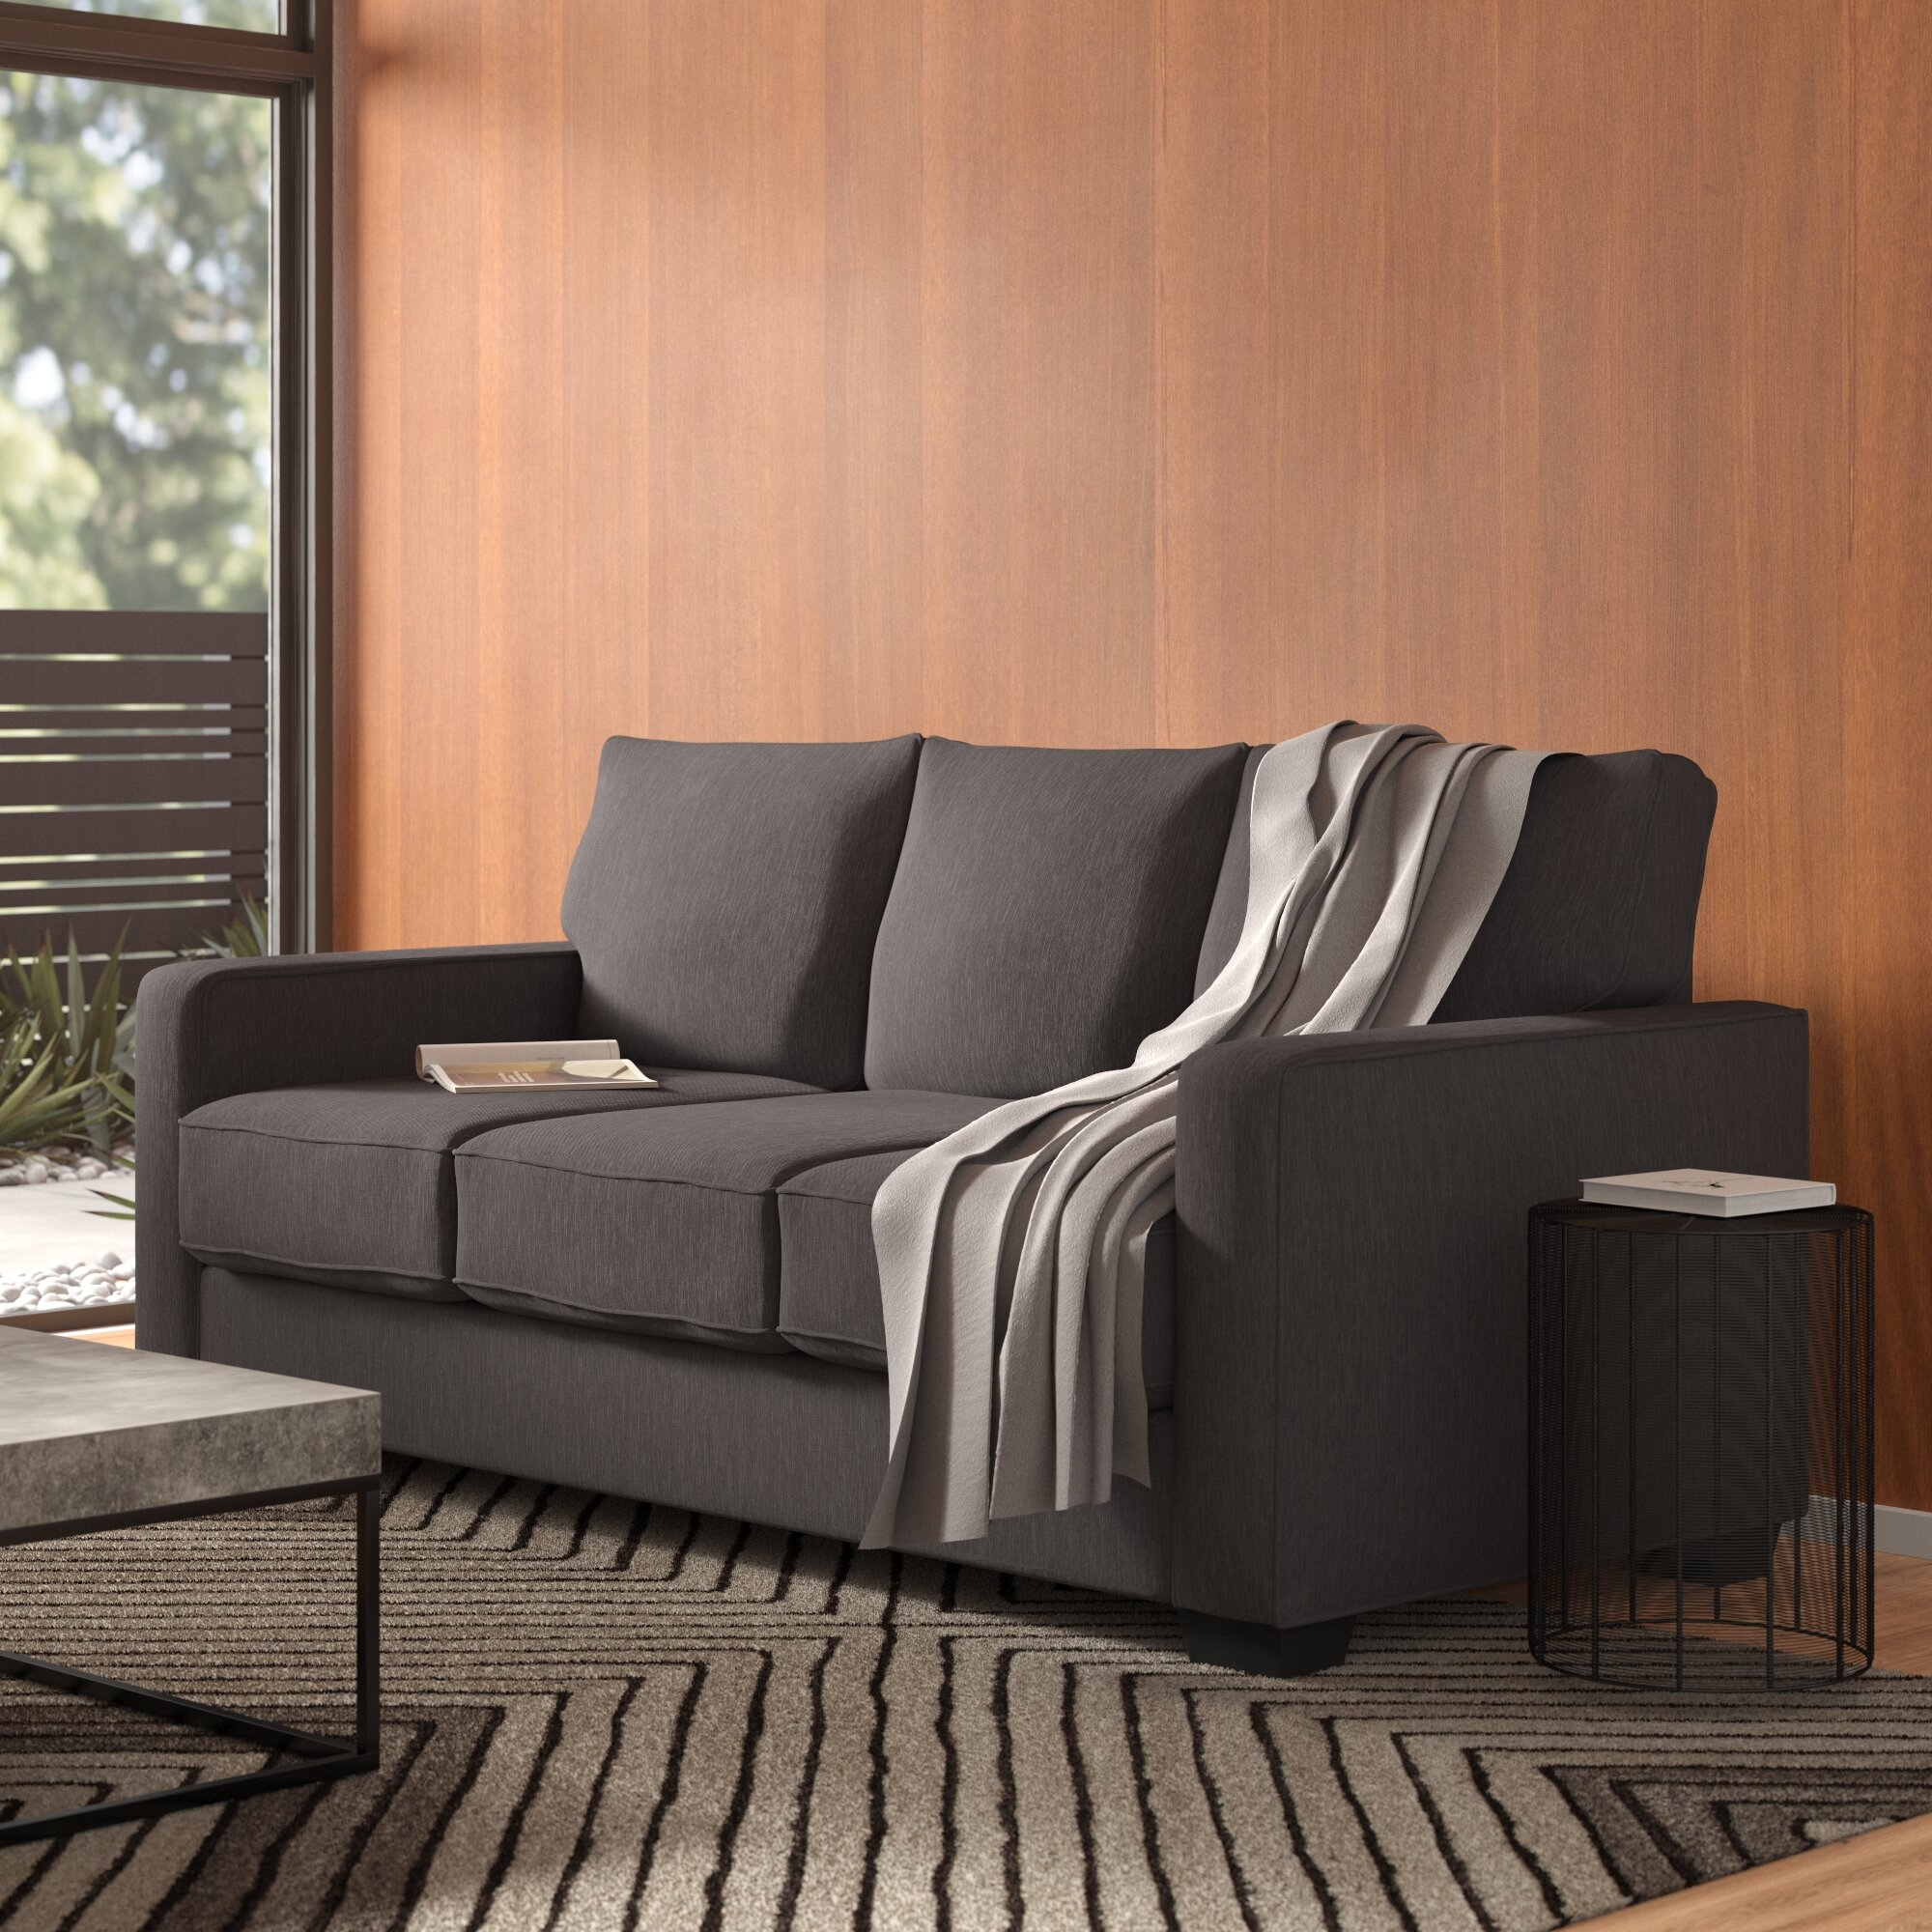 Amazing Ritter Sofa Bed Cjindustries Chair Design For Home Cjindustriesco